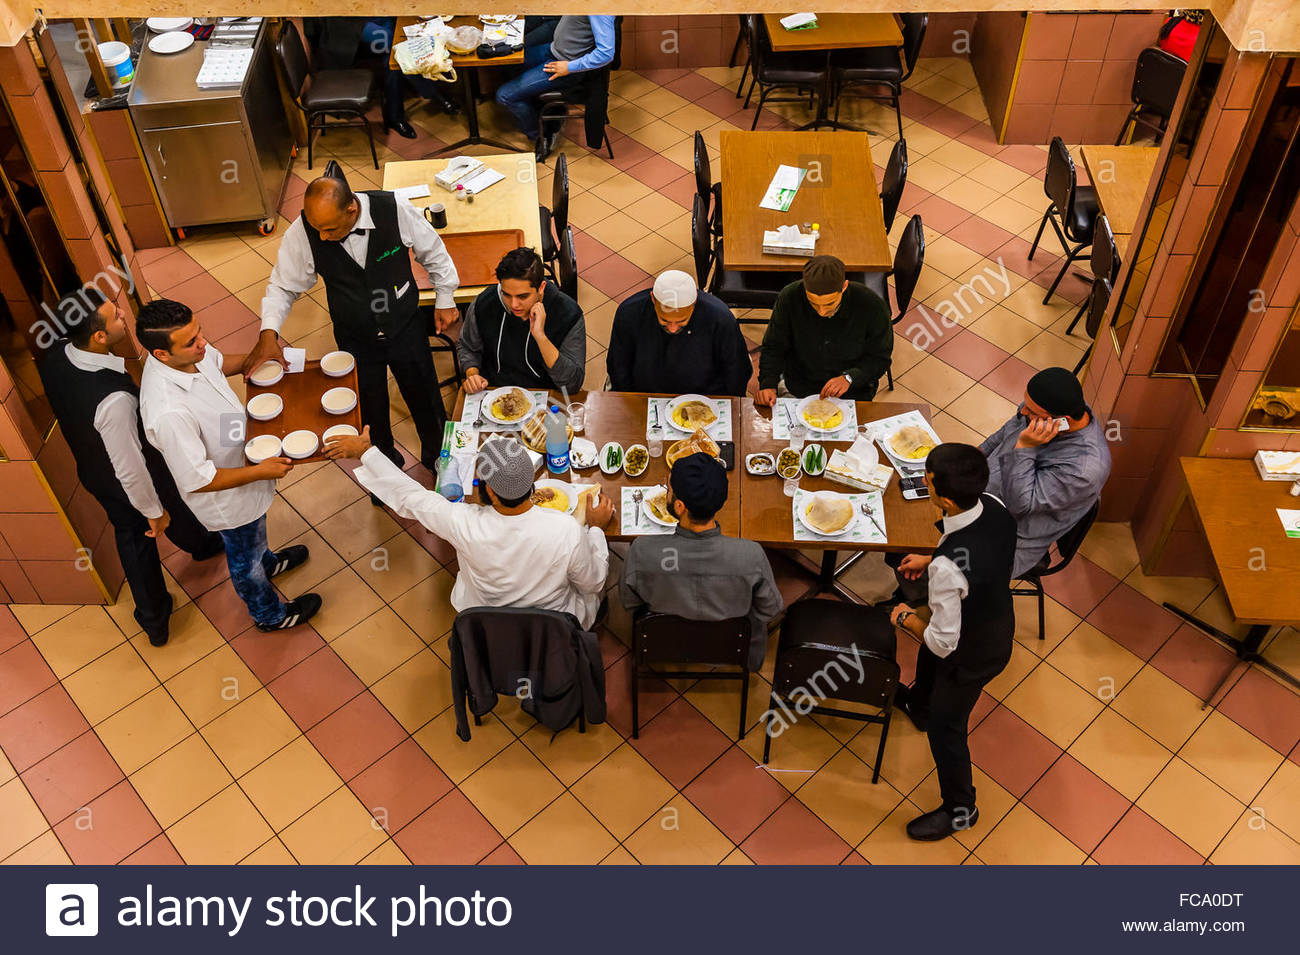 Overview, Men eating lunch, Al-Quds Restaurant, Downtown Amman, Jordan. - Stock Image